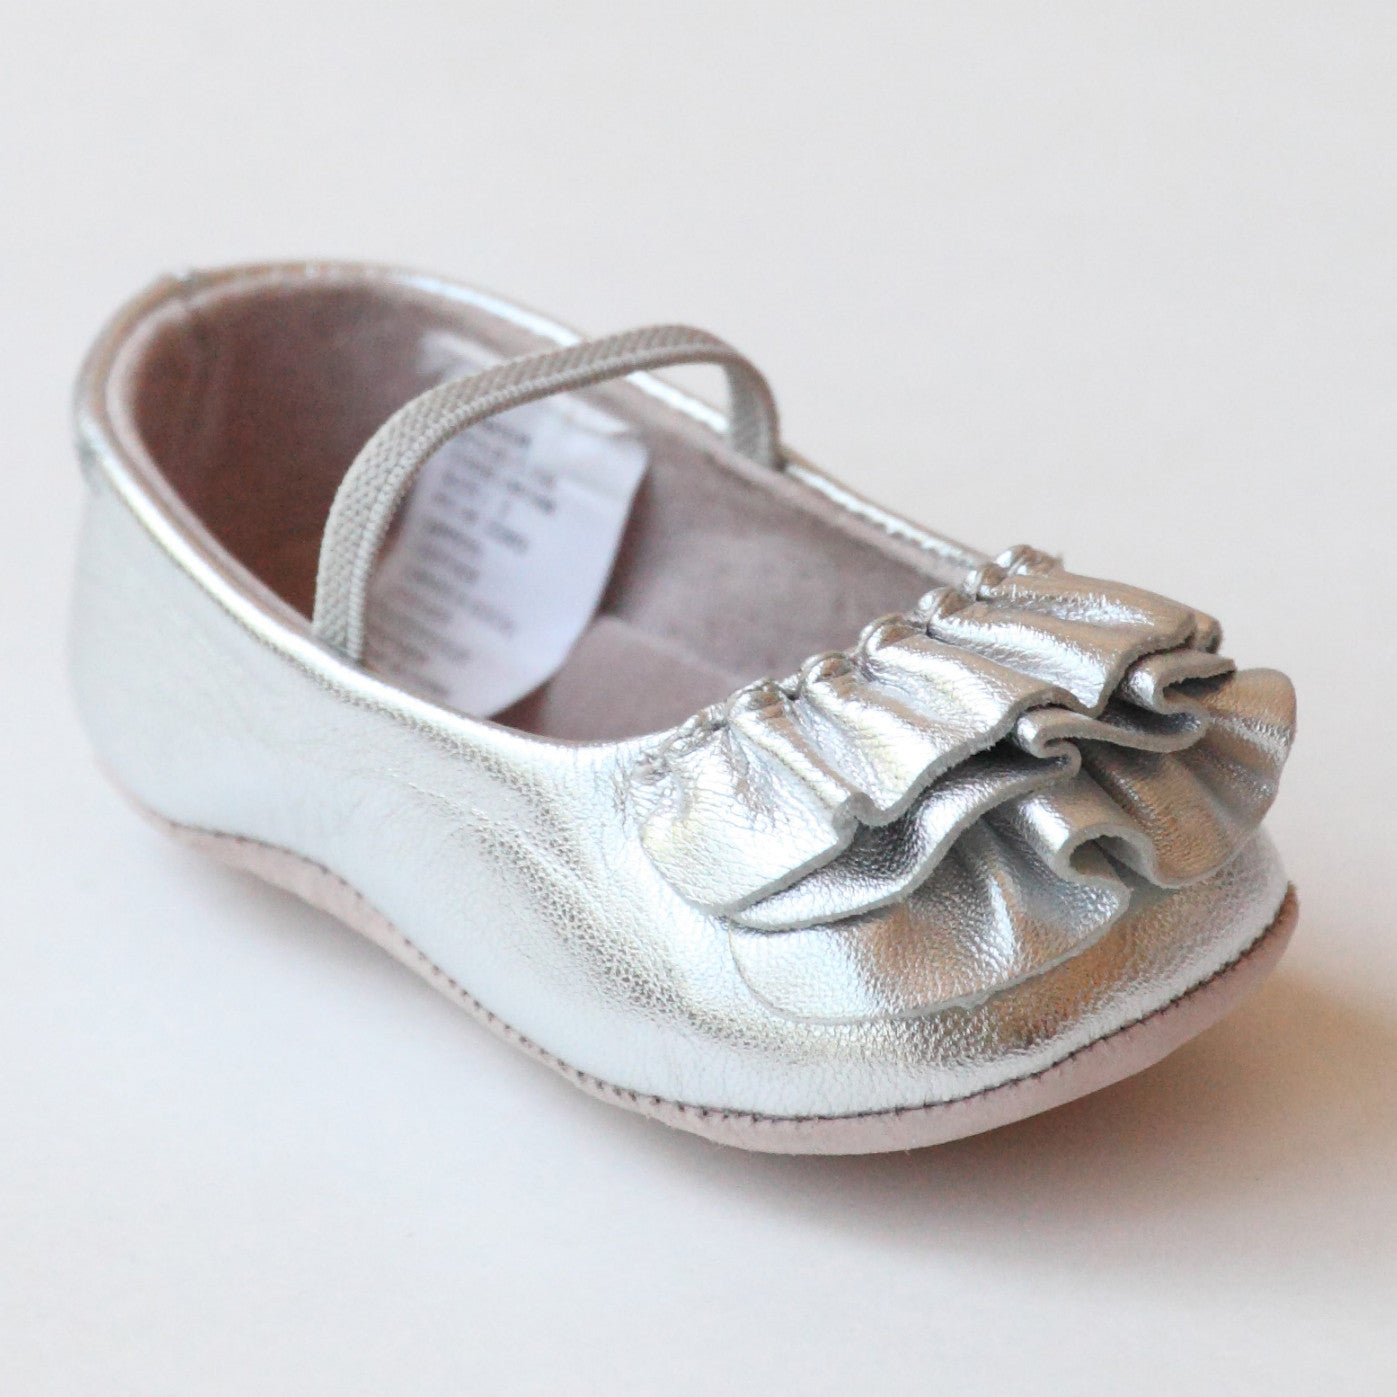 L Amour Infant Girls C 330 Silver Ruffle Mary Janes – Babychelle